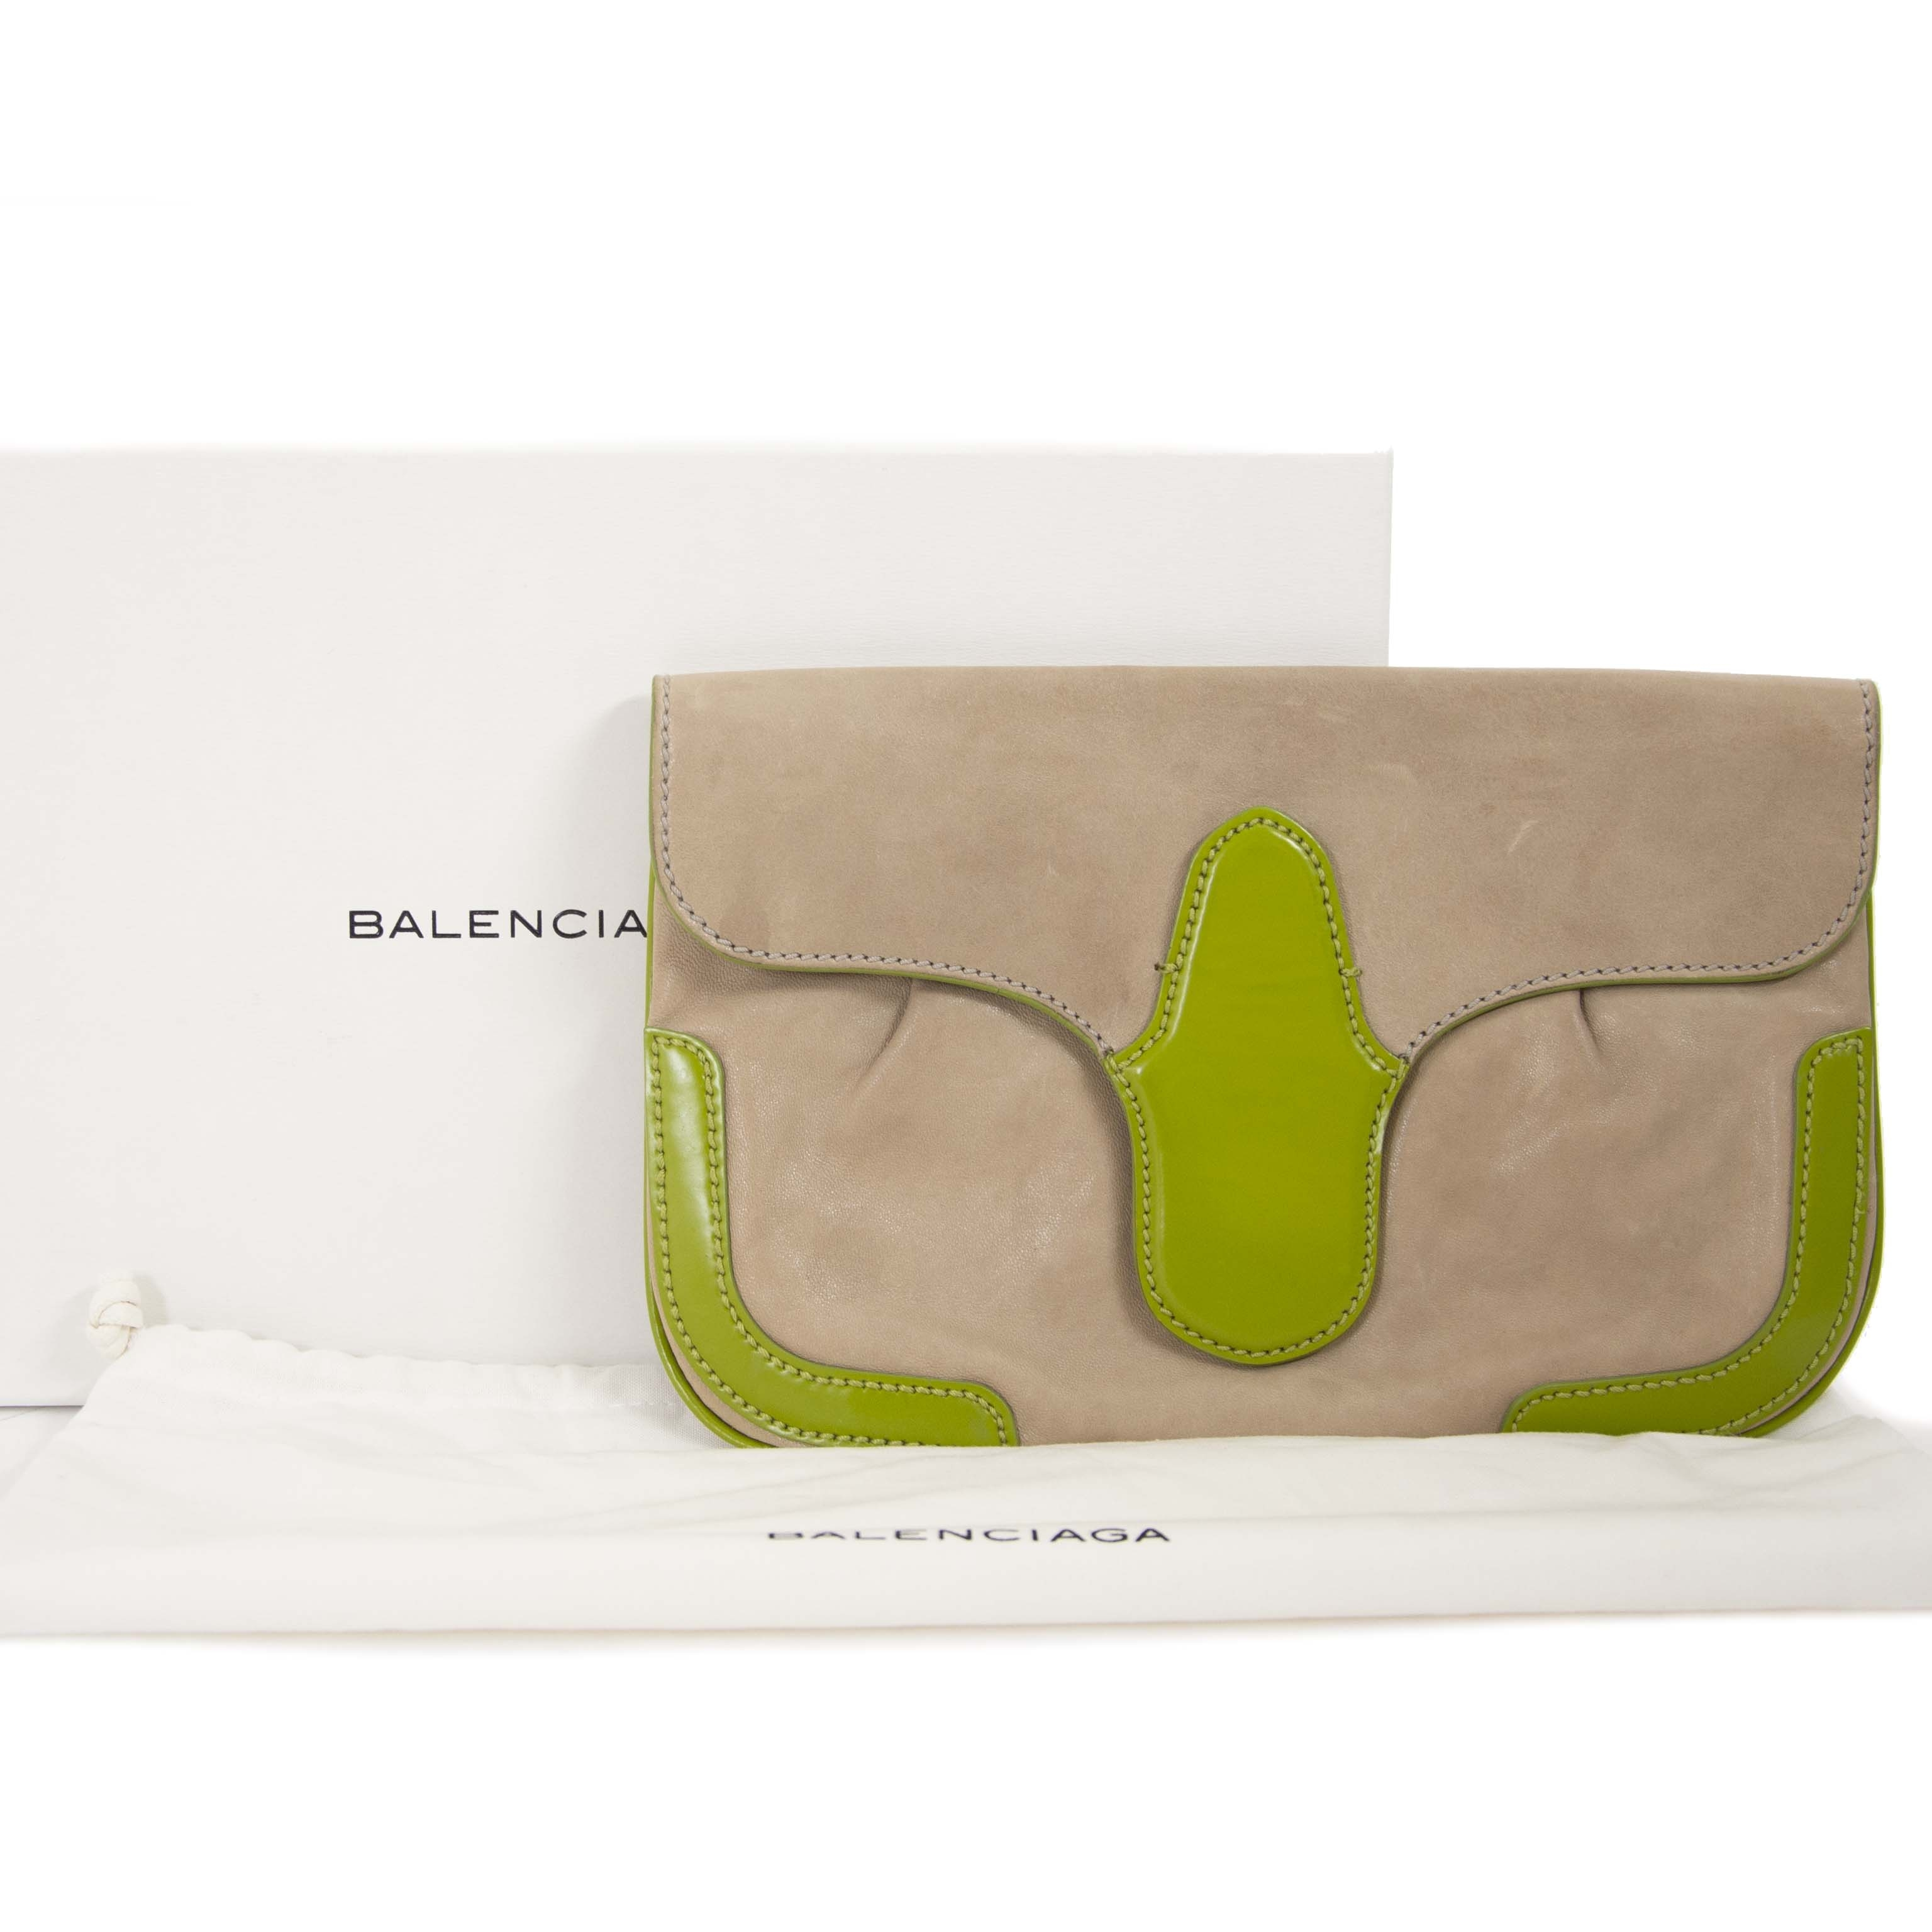 9bde553beb0e ... Balenciaga Beige And Green Leather Lune Clutch now for sale at labellov  vintage fashion webshop belgium